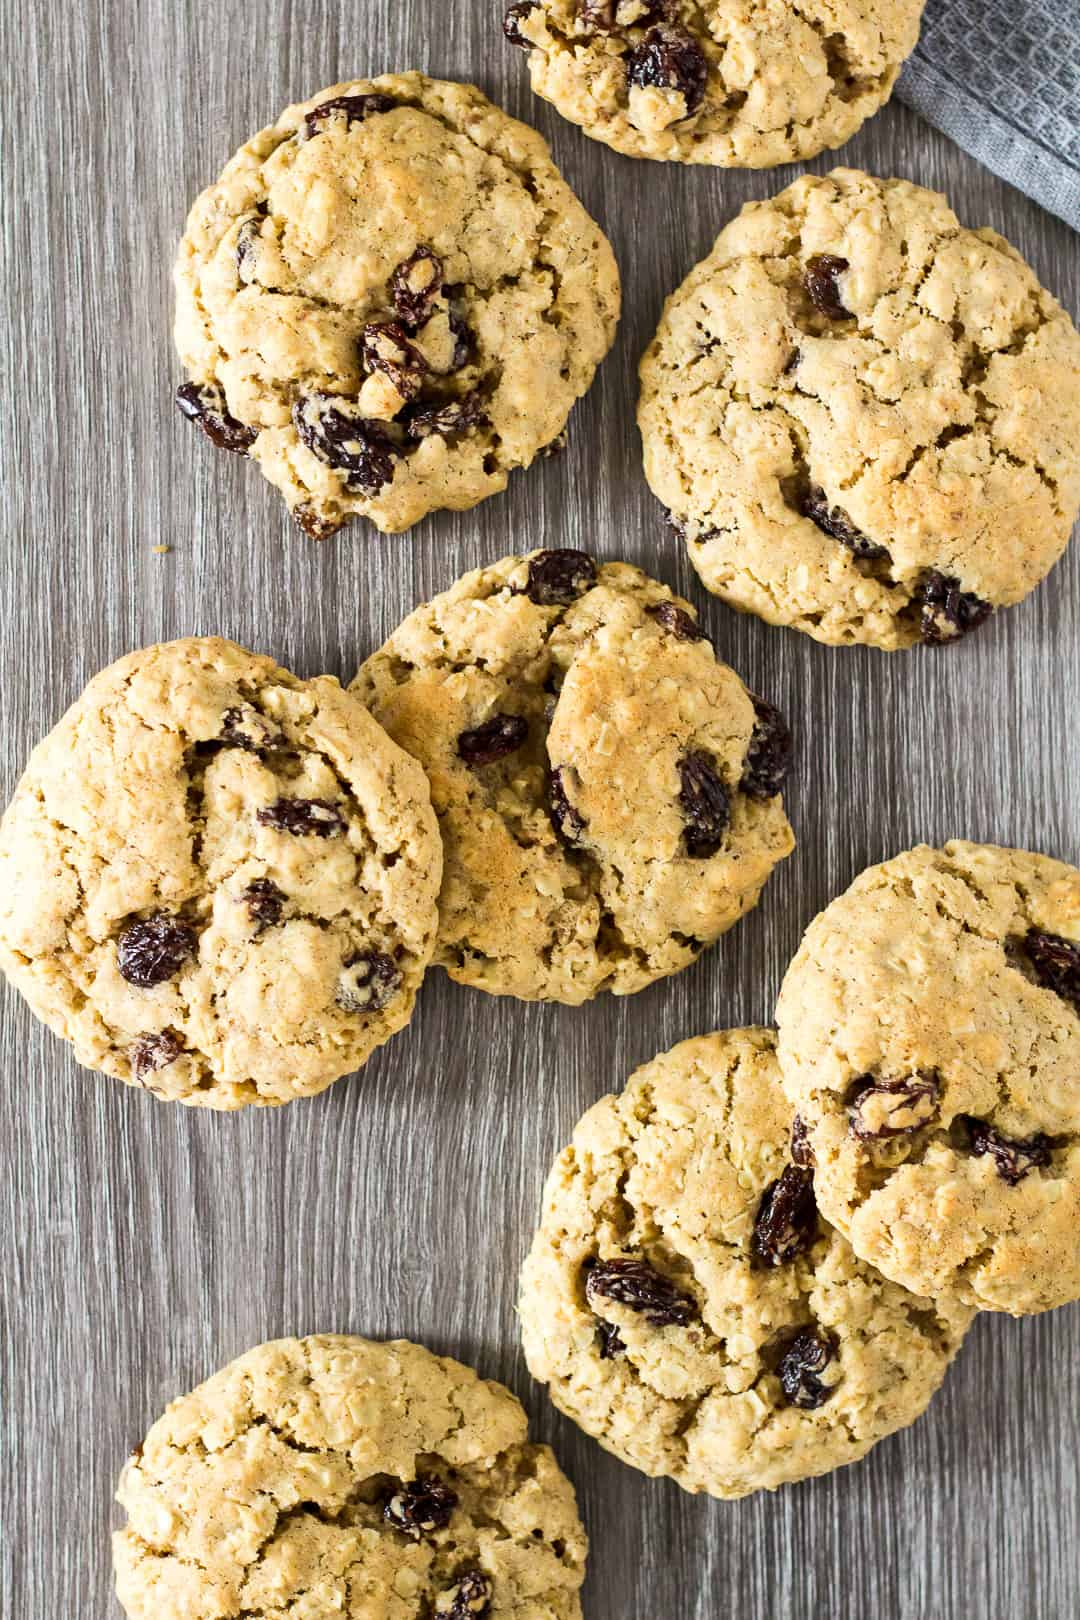 An overhead view of Oatmeal Raisin Cookies.